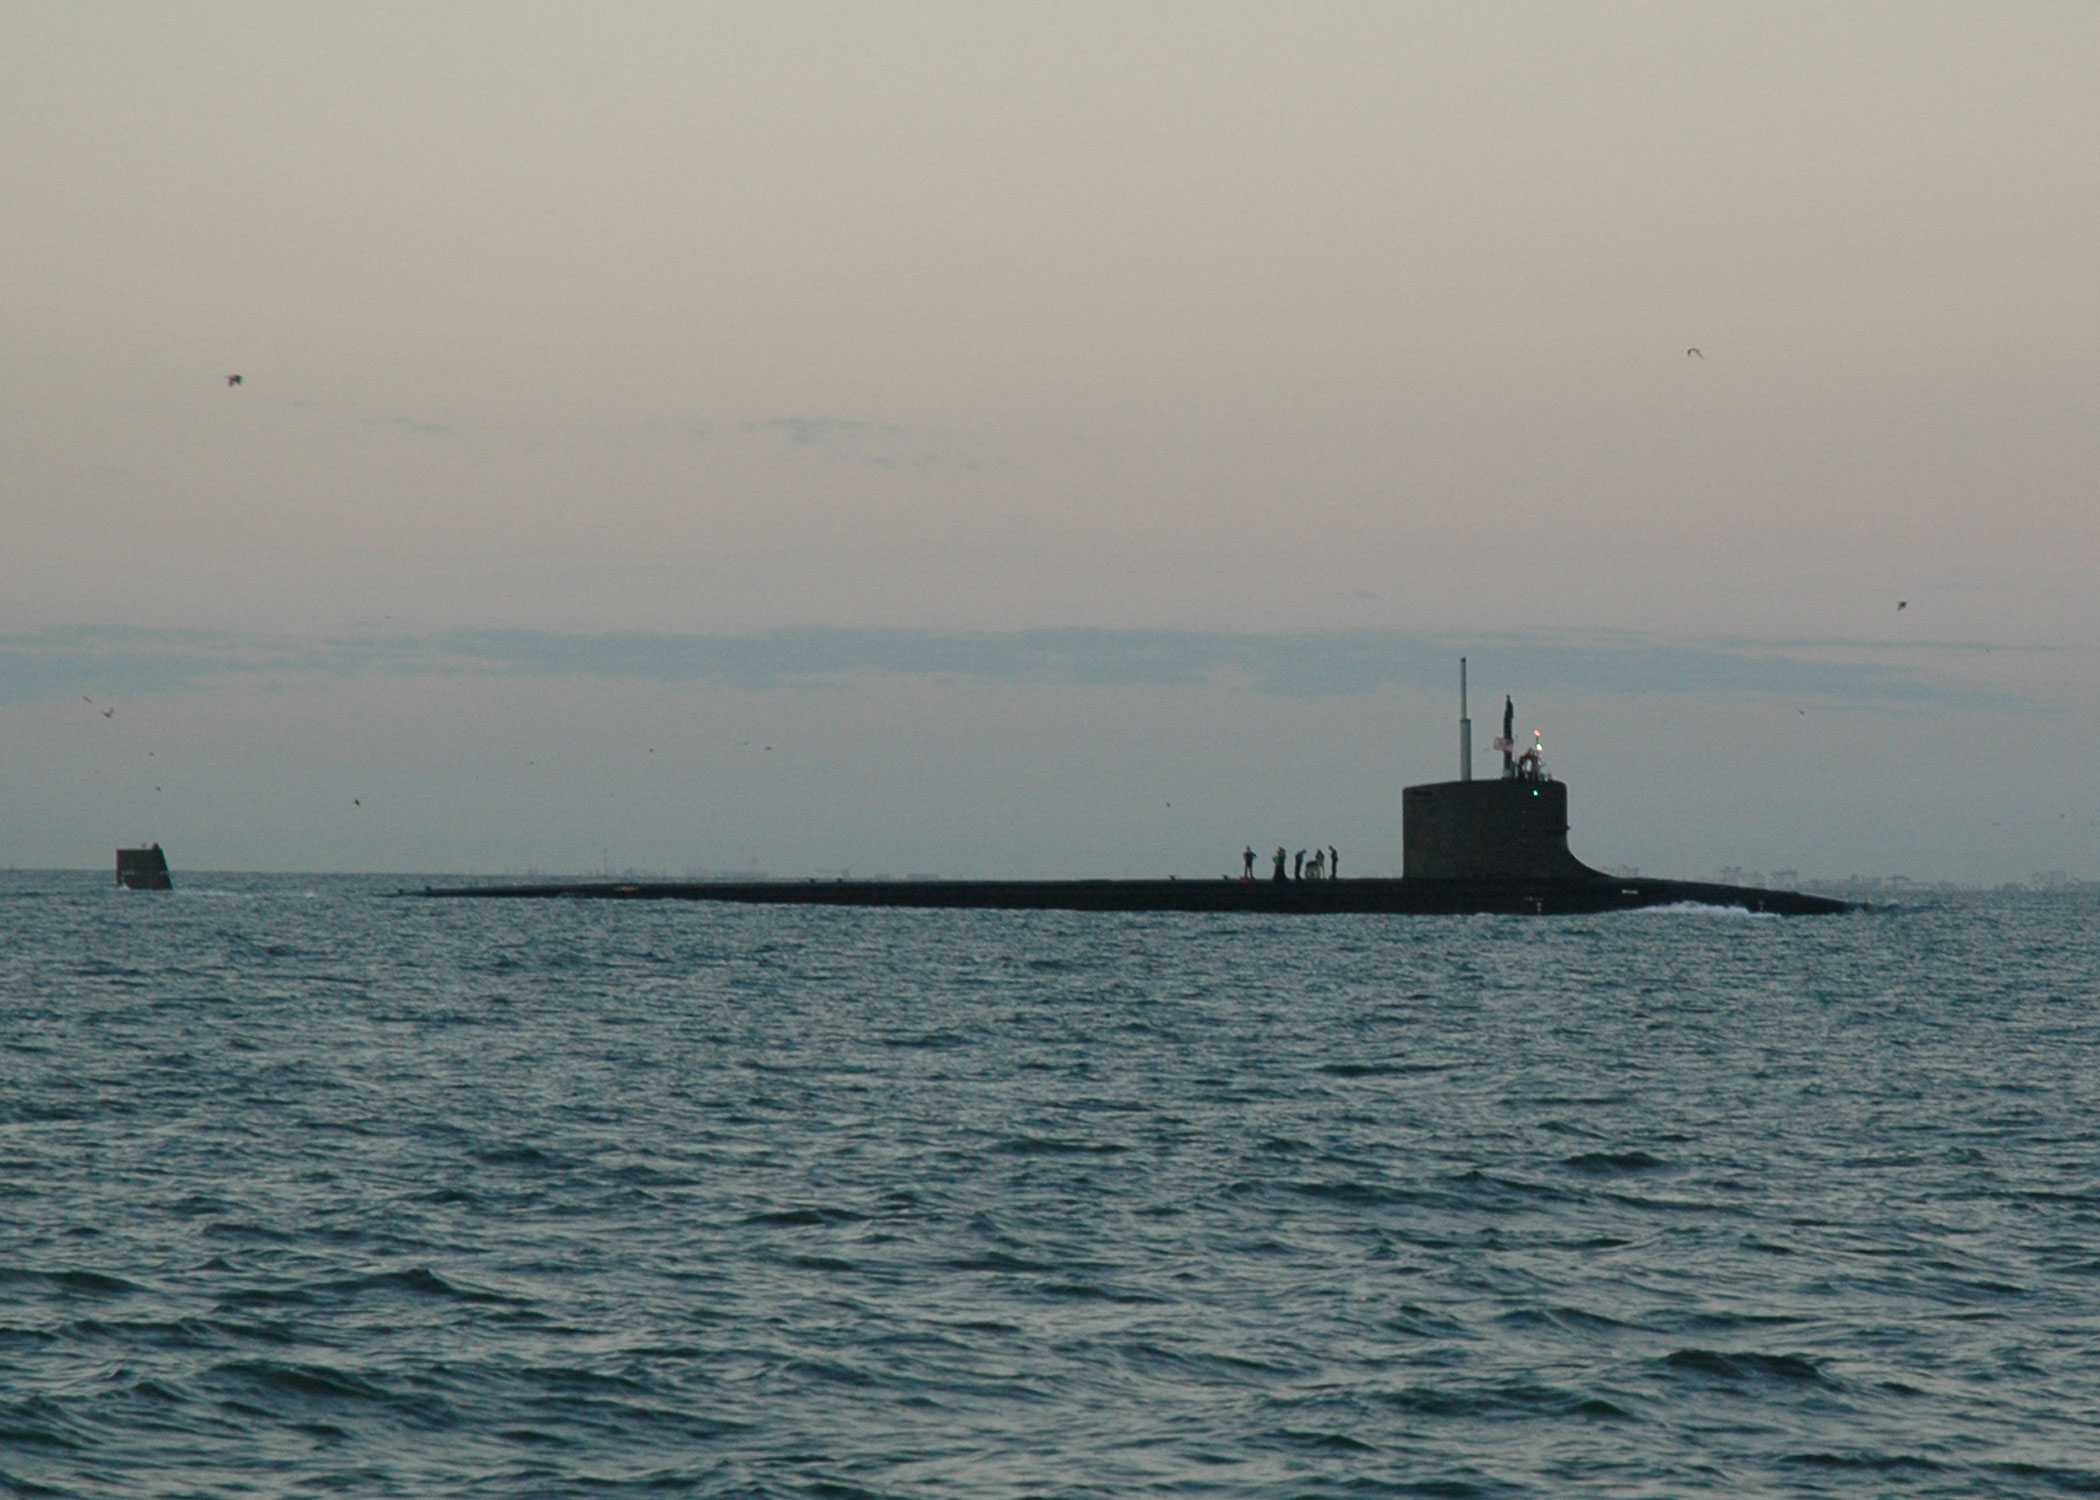 US Navy Submarine we saw this morning coming in to Cape Canaveral.